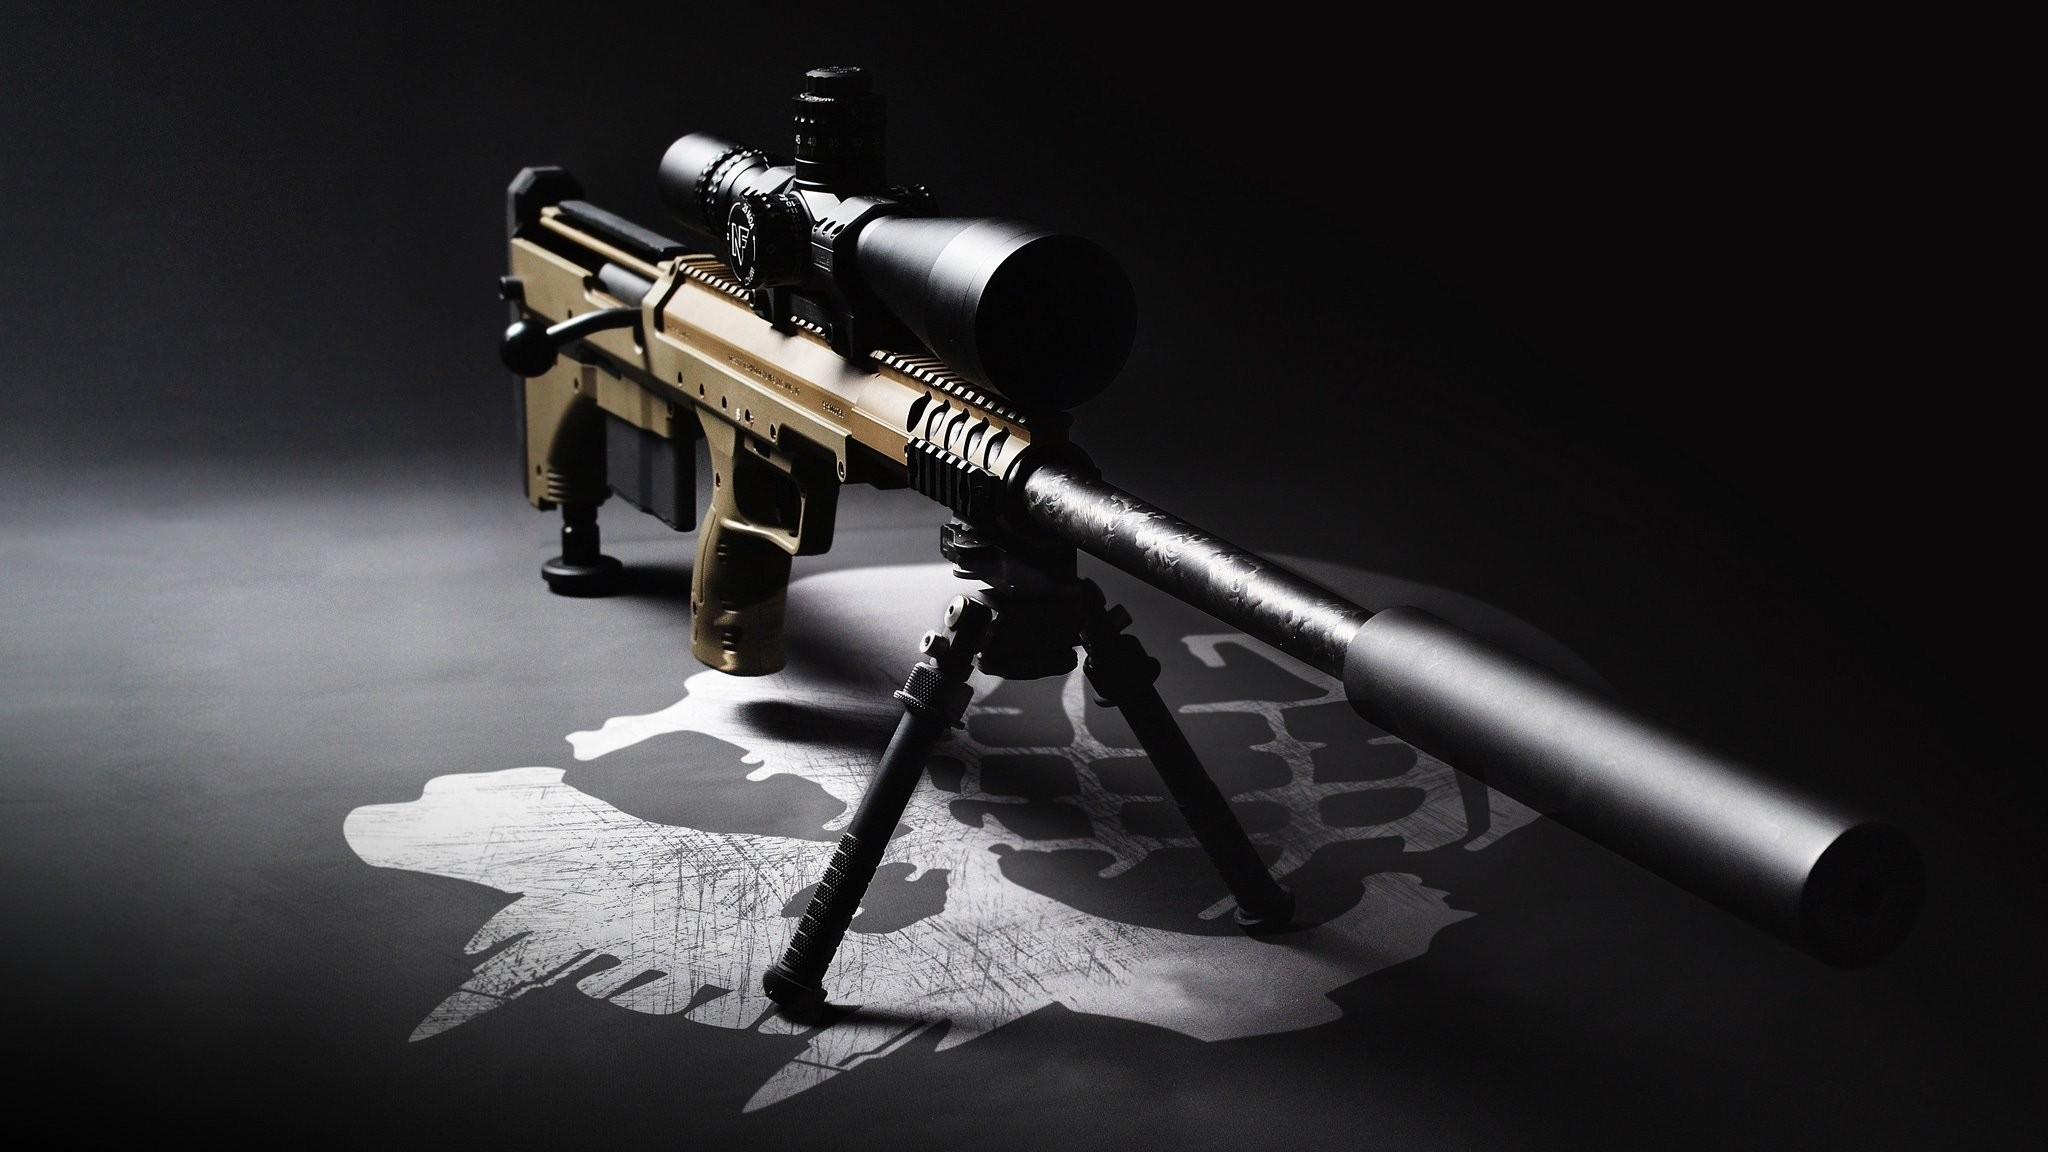 Animated Wallpapers Hd 1080p Sniper Rifle Wallpaper 73 Images